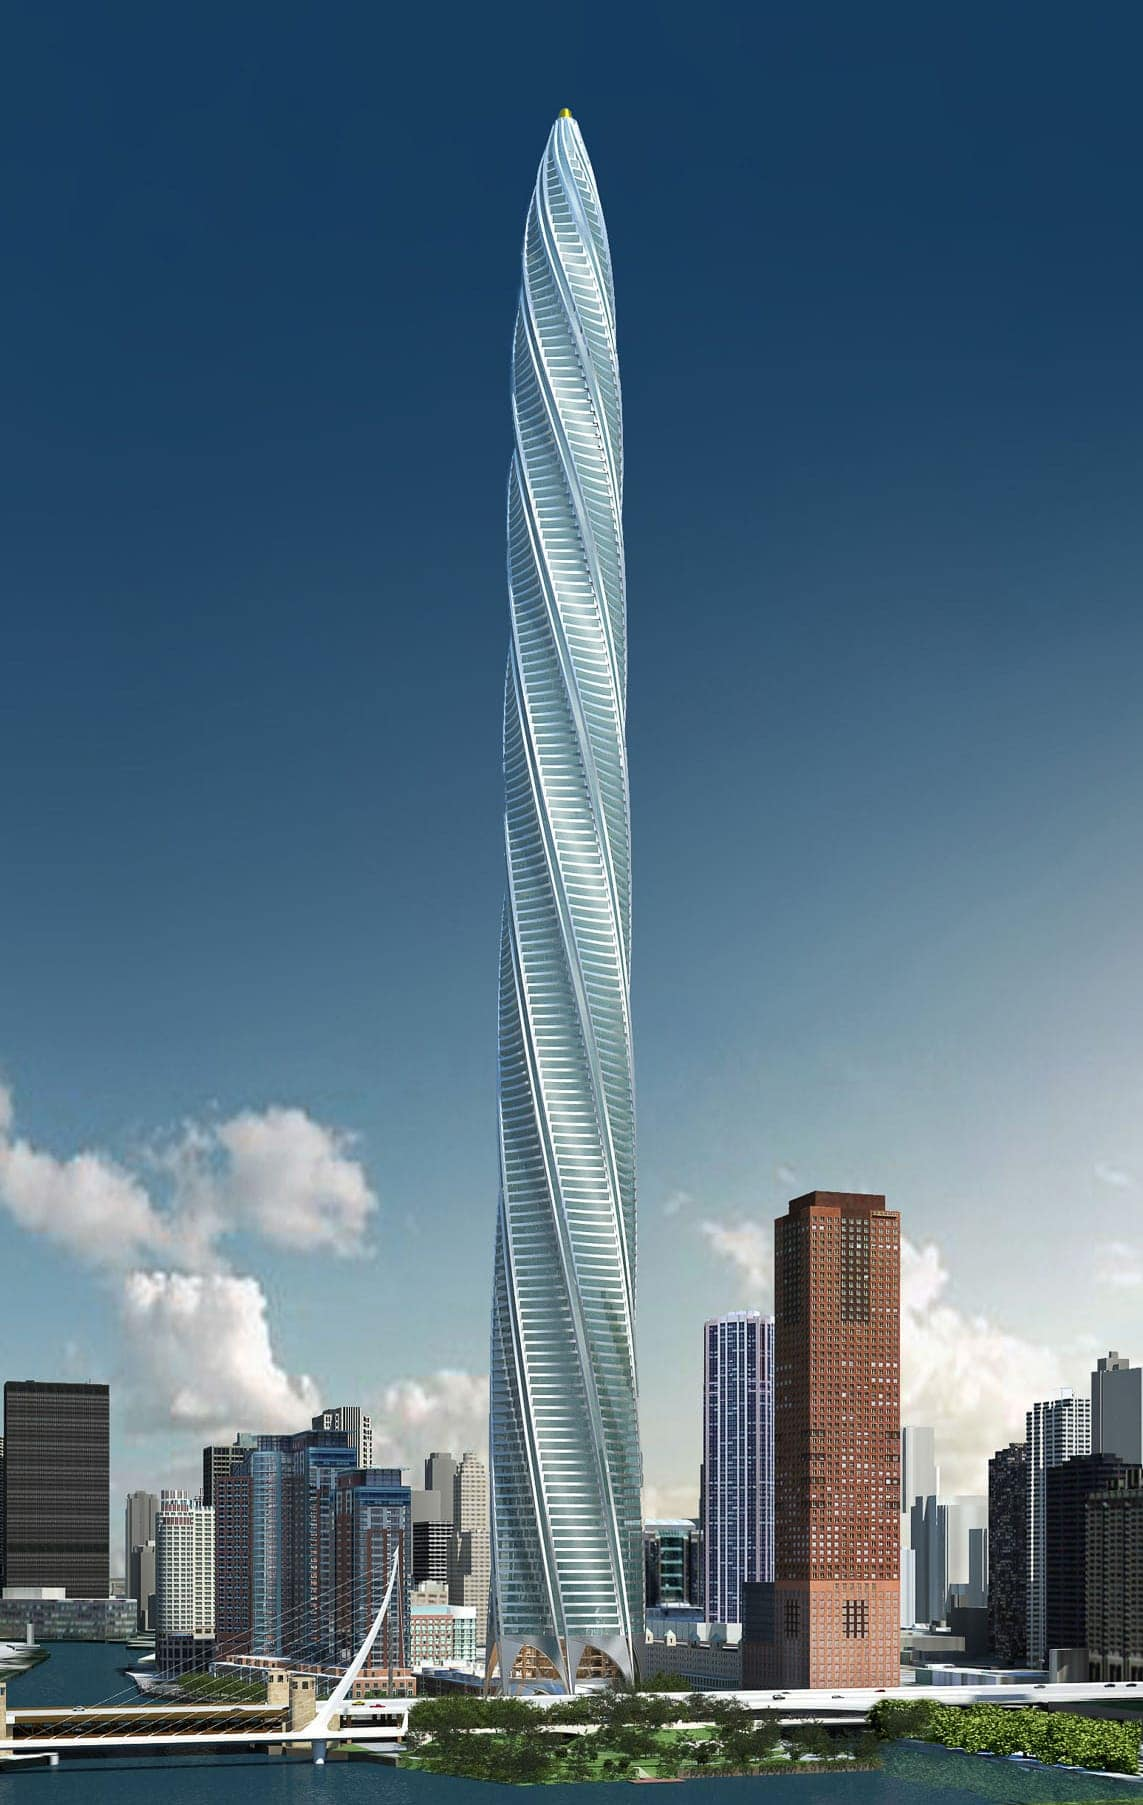 The Chicago Spire Tower